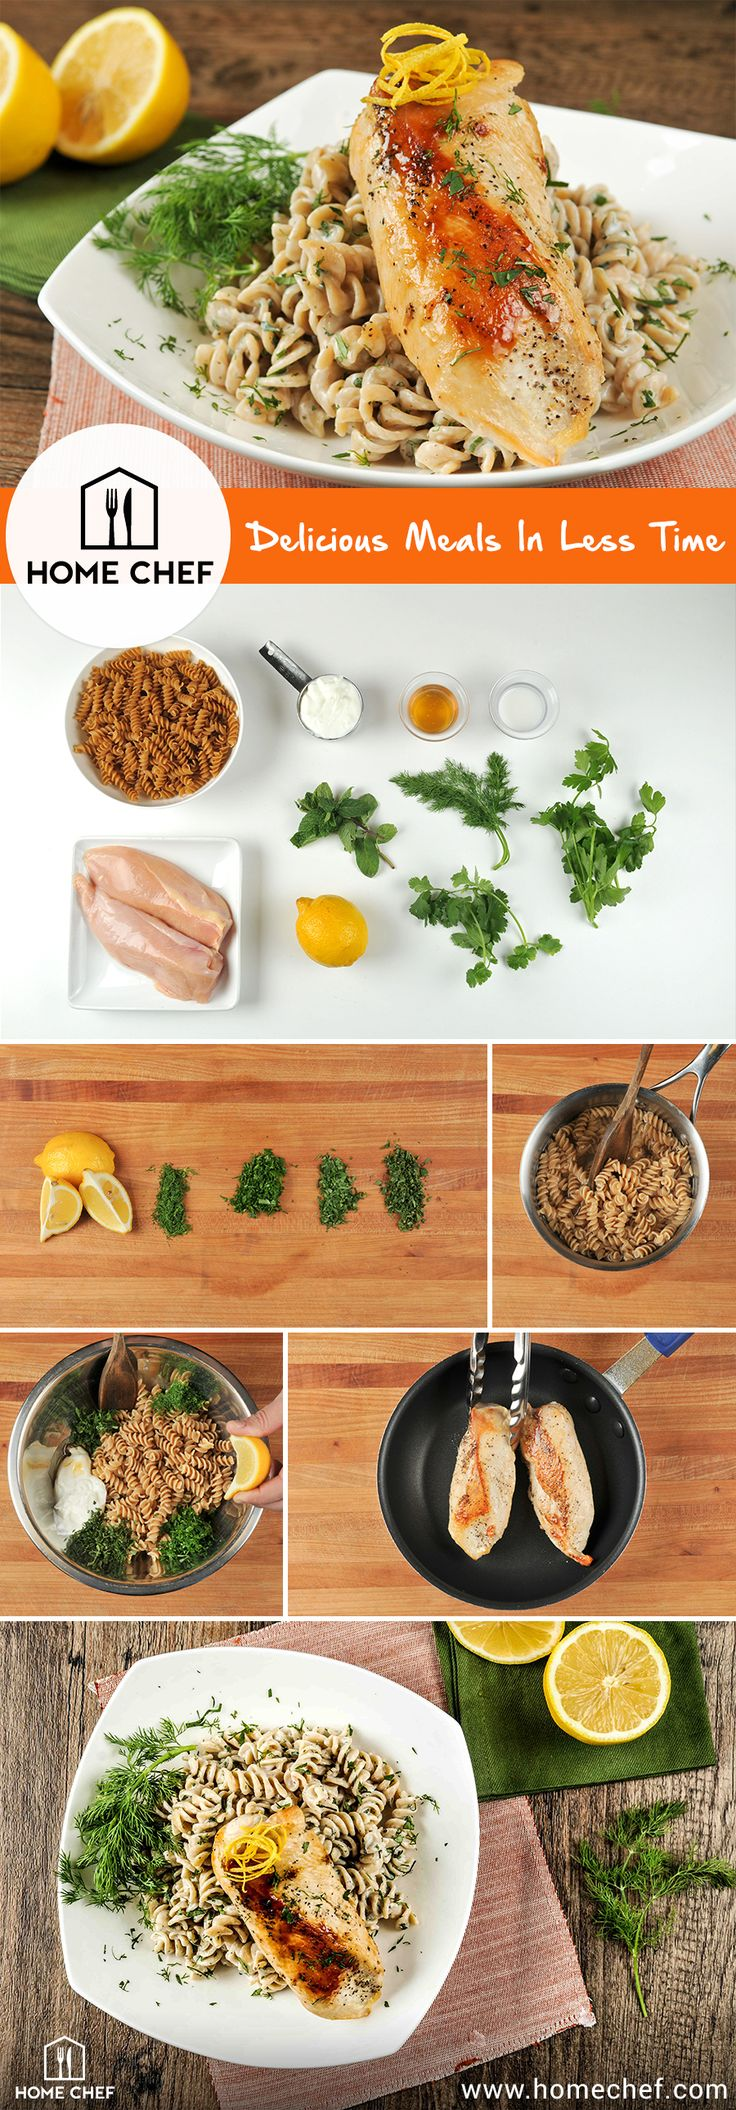 Get $30 off your first order when you try Home Chef today!  Start living a healthier life when you sign up for Home Chef. Receive fresh, pre-portioned ingredients straight to your kitchen, with recipes curated from world-class chefs. From hearty meat and seafood options to gluten-free and low-carb dishes, there's a dinner option that's bound to work for you. Get started with Home Chef today.